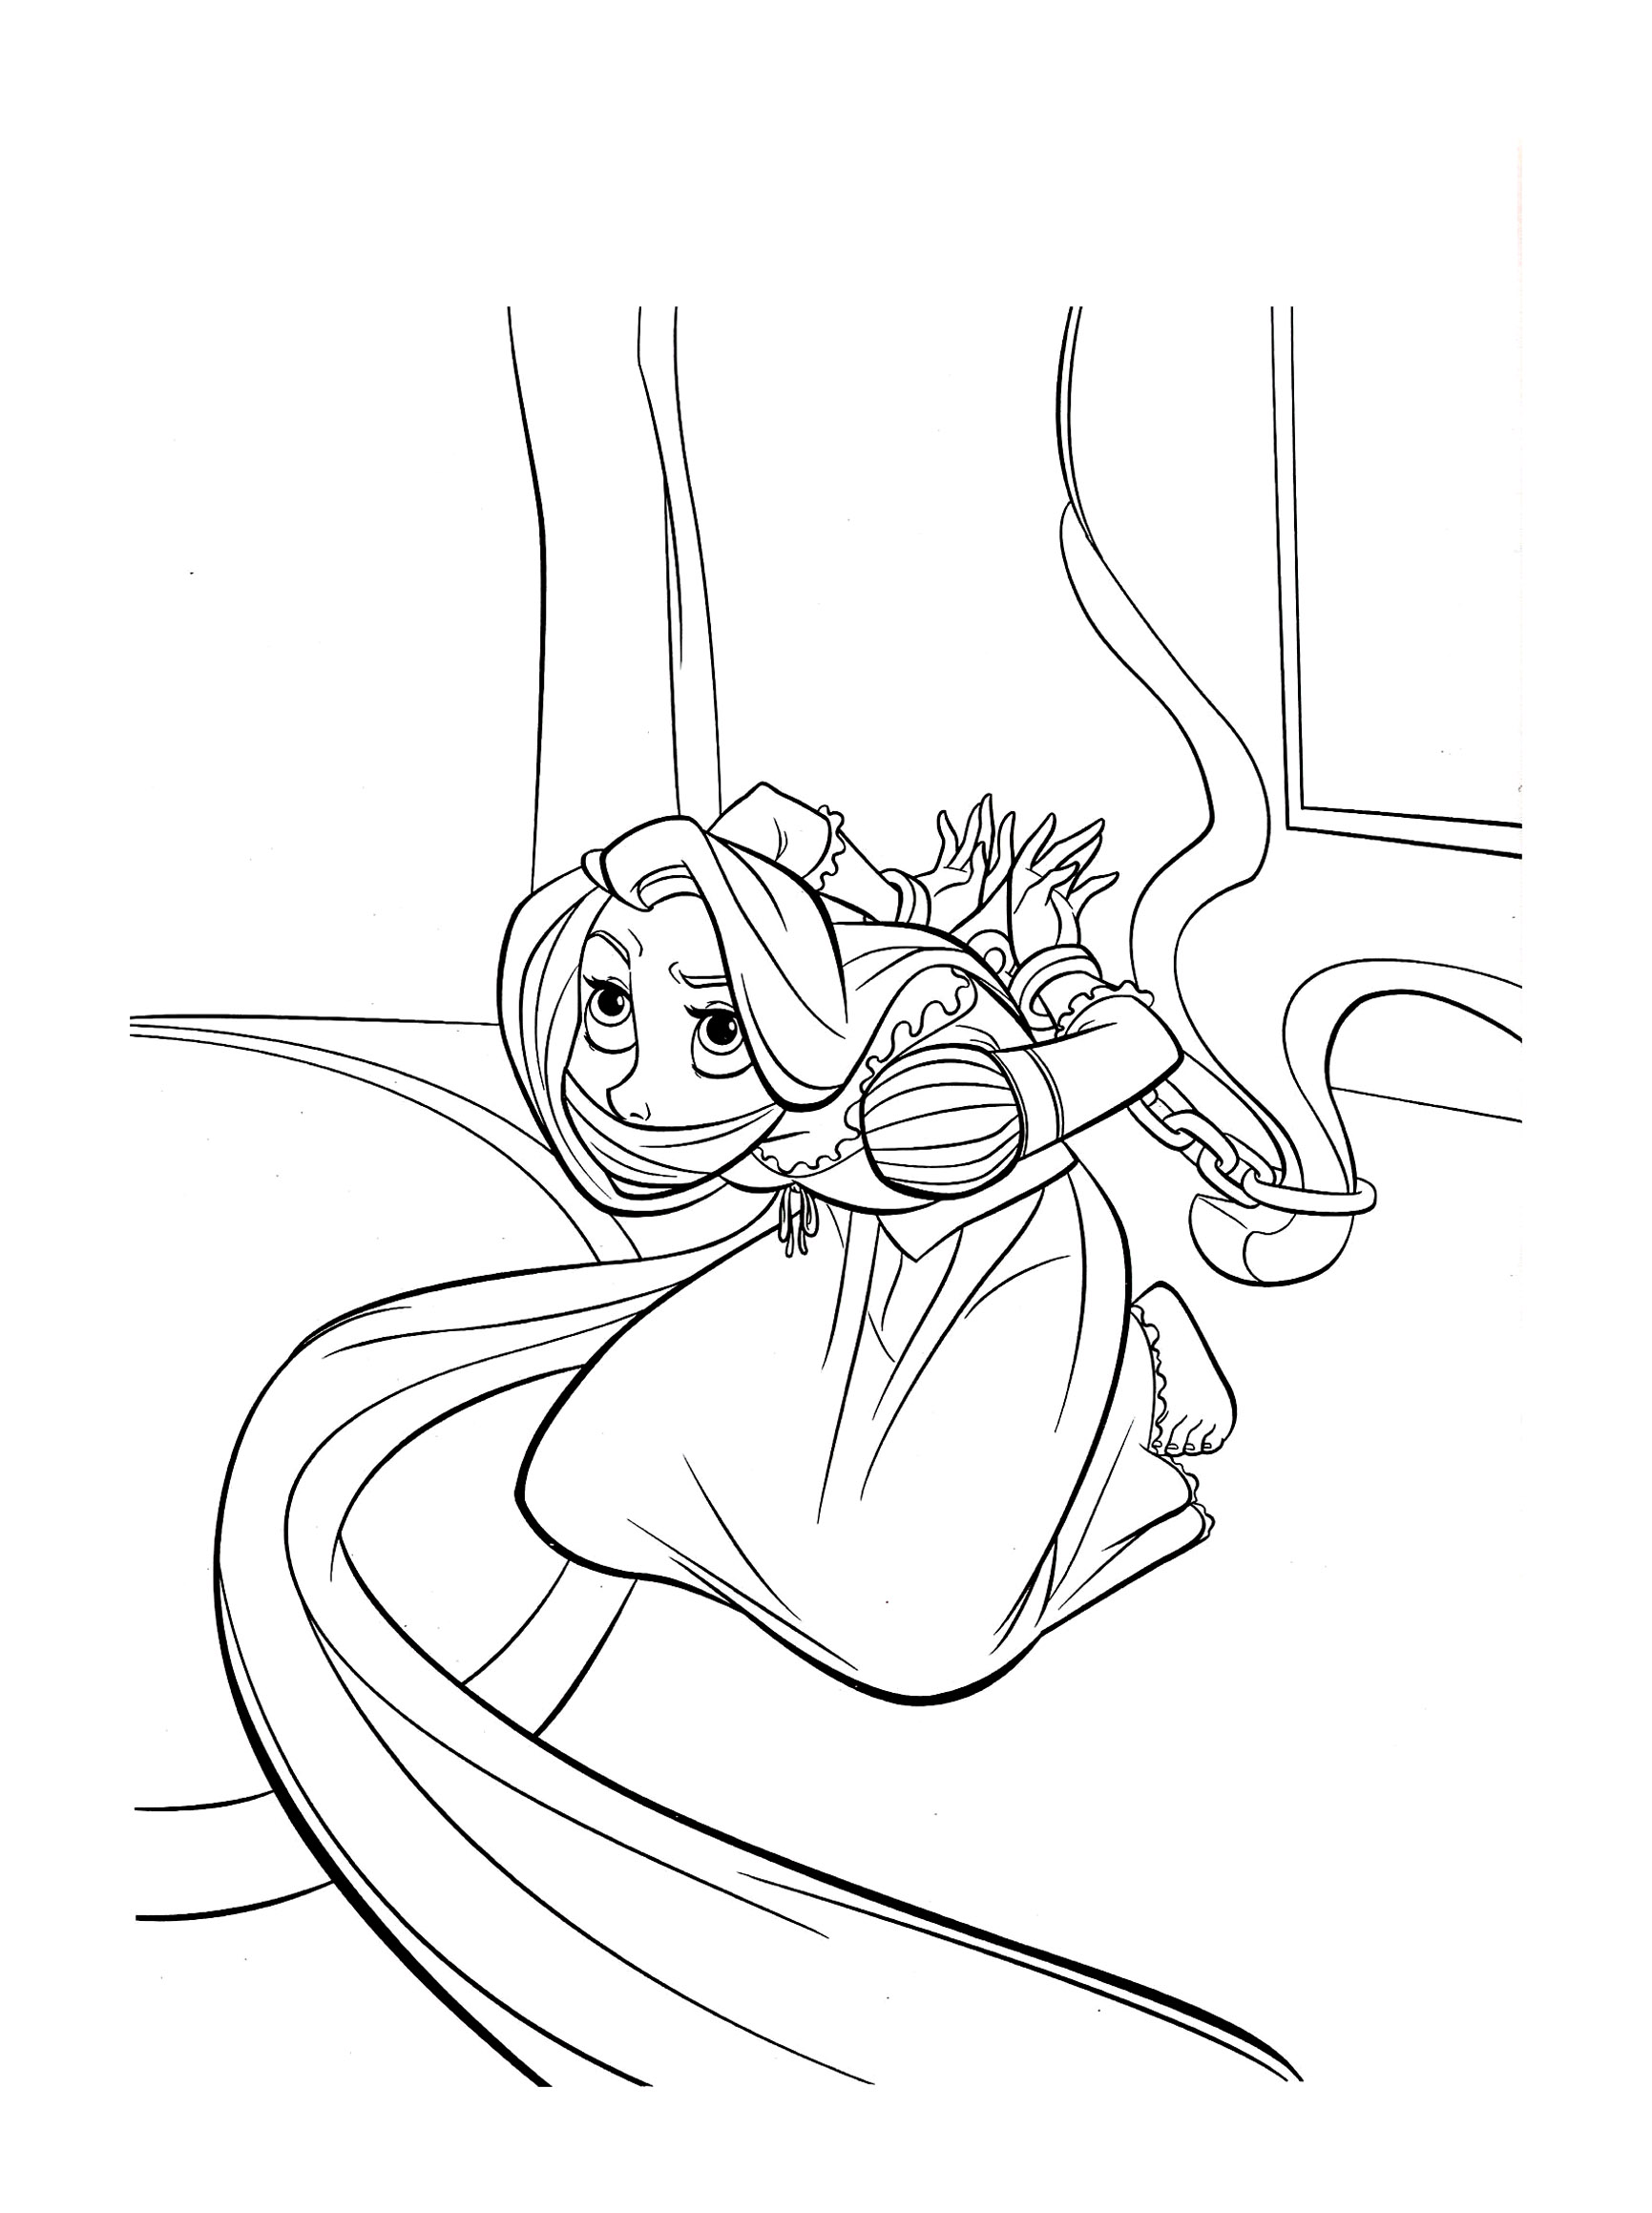 Tangled Free To Color For Children Tangled Kids Coloring Pages